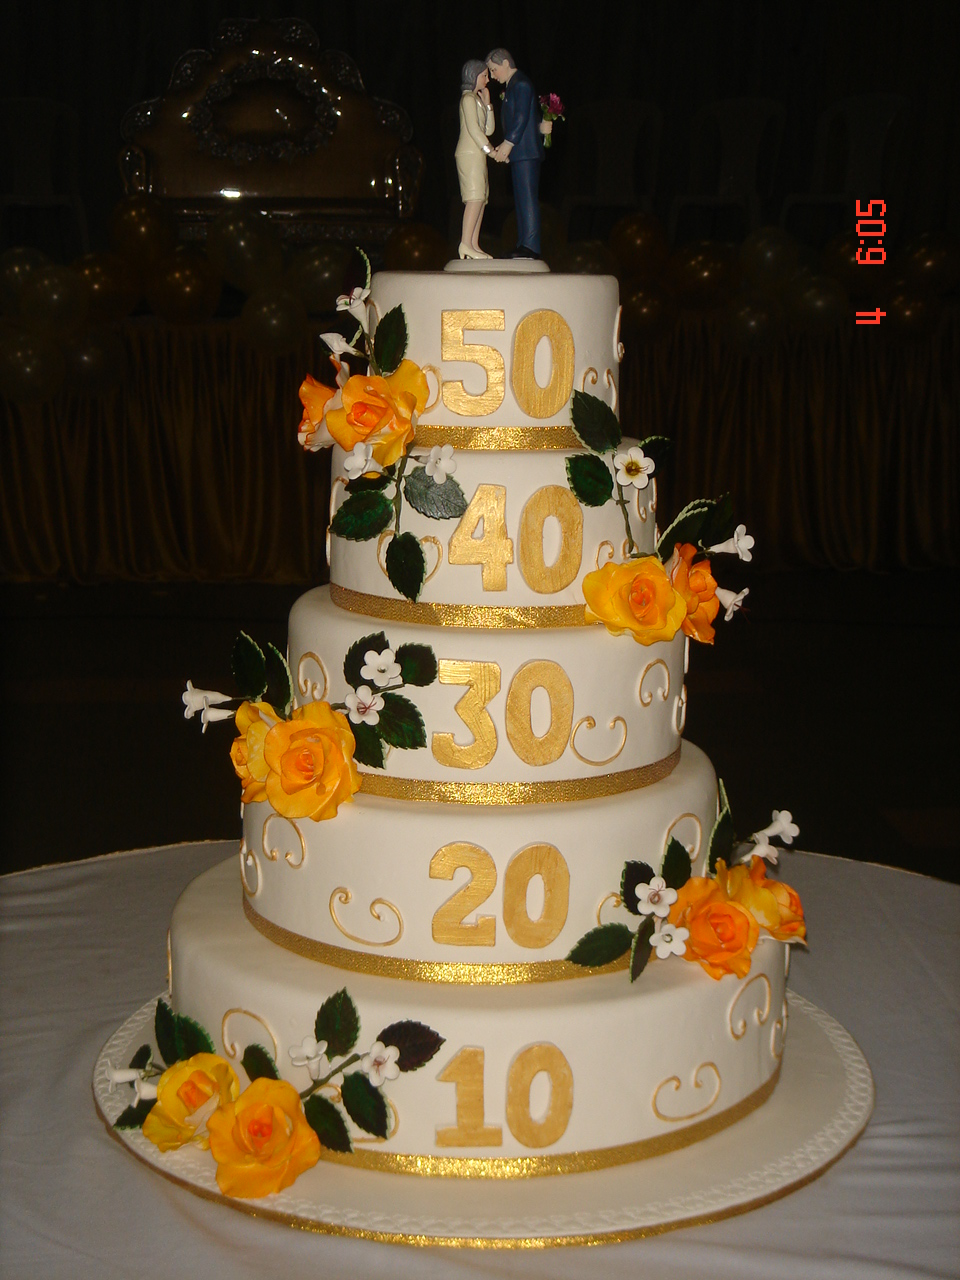 buy online cake on 50th anniversary wedding cakes. Black Bedroom Furniture Sets. Home Design Ideas